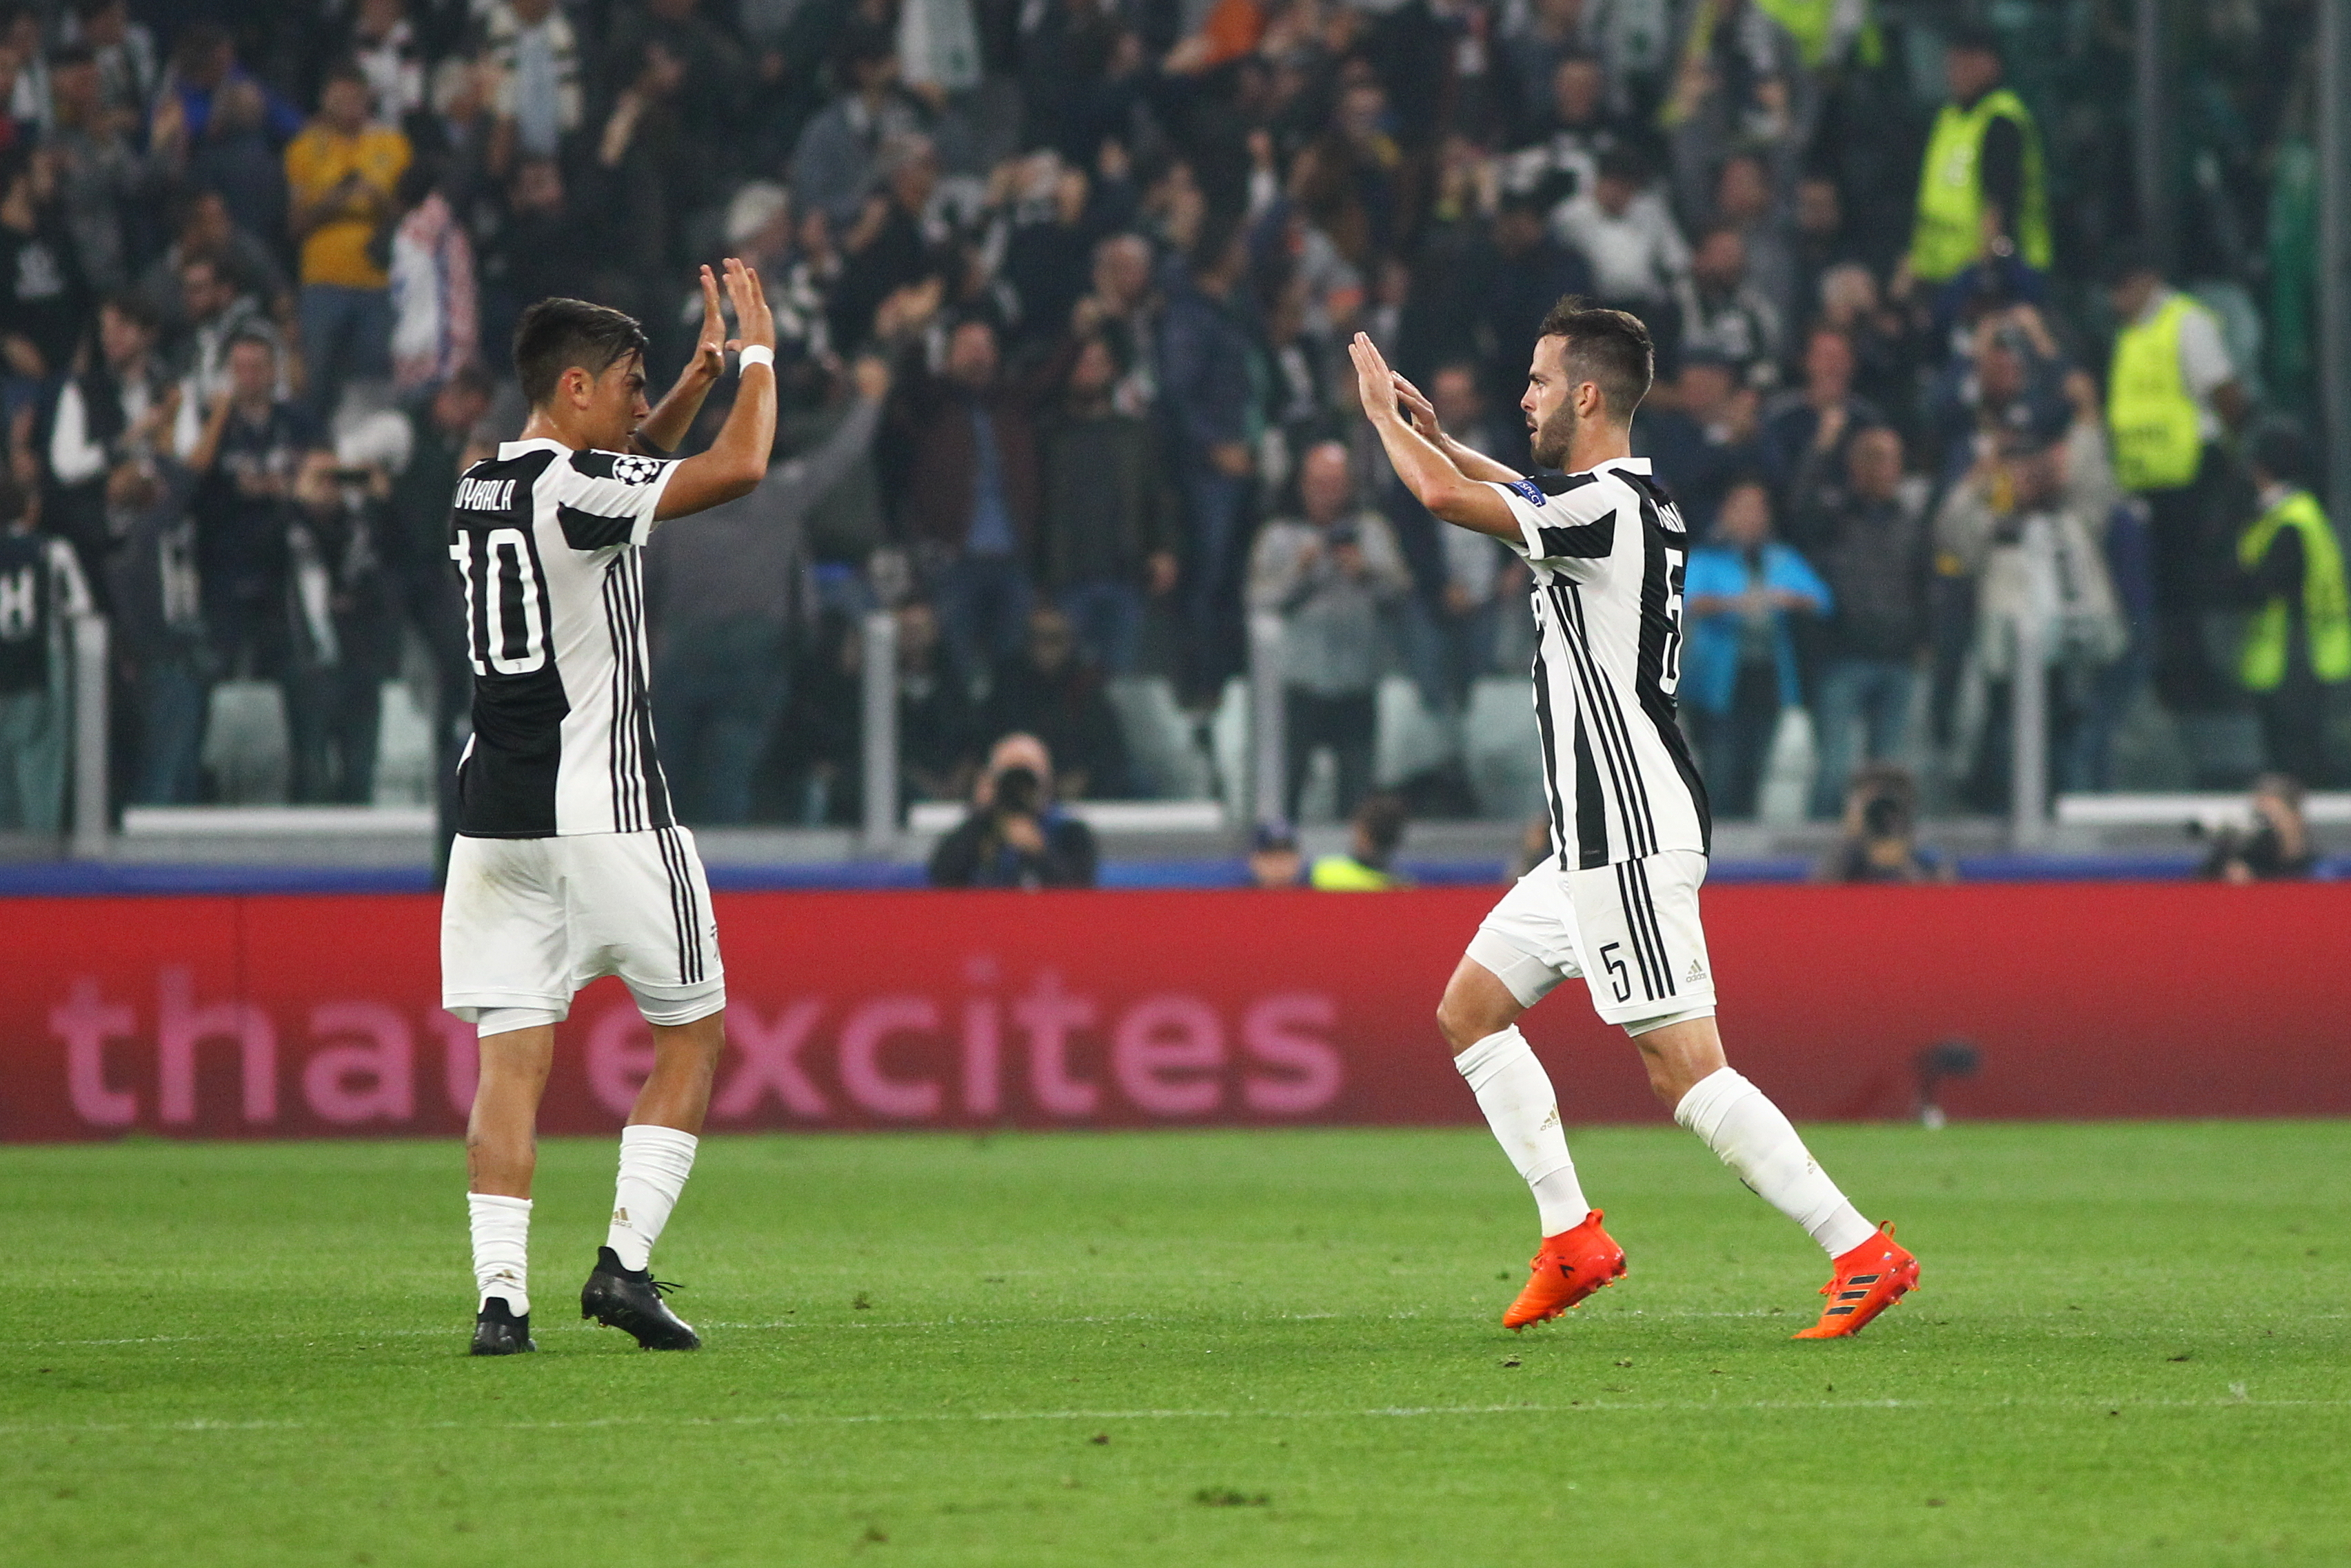 Juventus 3 Cagliari 1: Dybala puts Bianconeri on path to record start